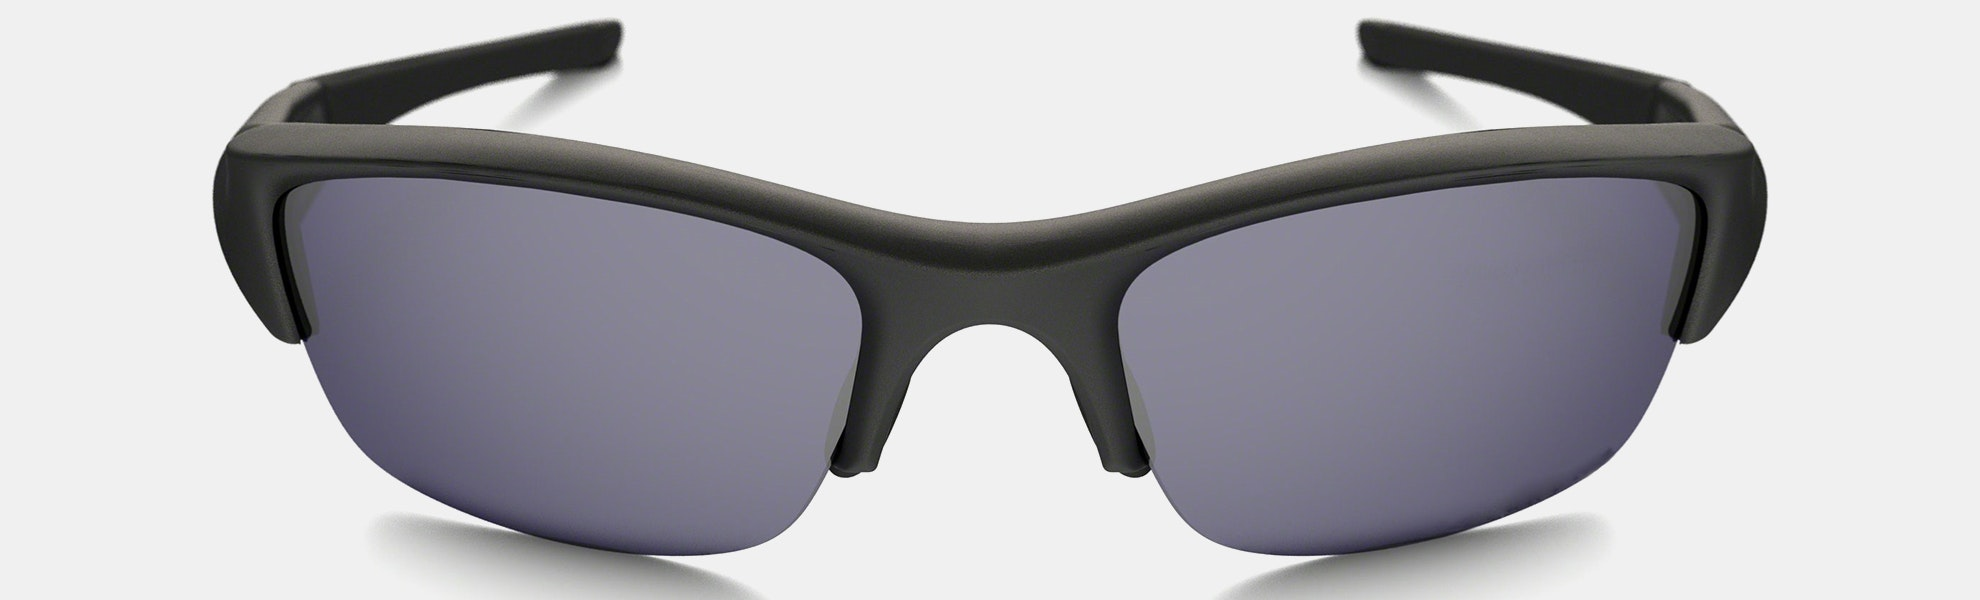 Oakley SI Flak Jacket Sunglasses